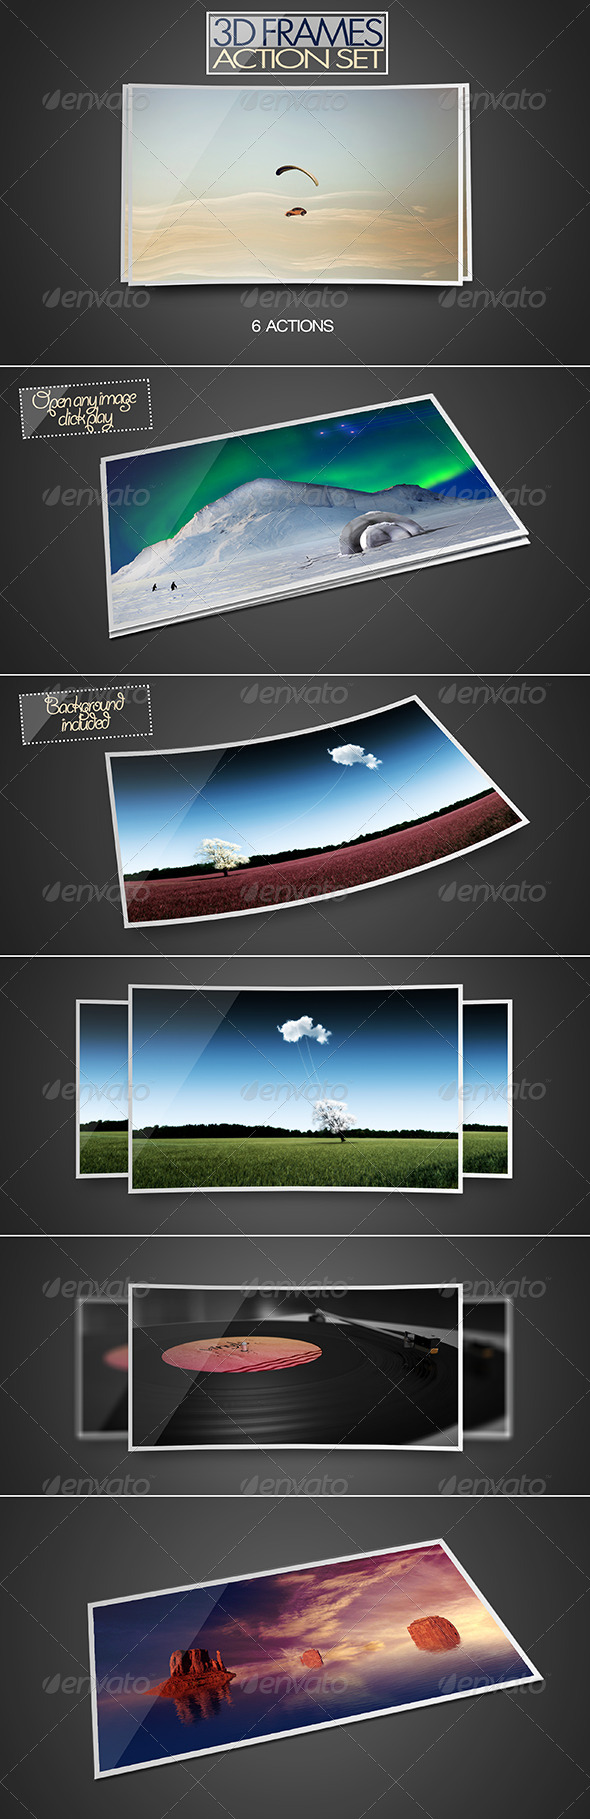 GraphicRiver 3D Frame Action Set 8565393